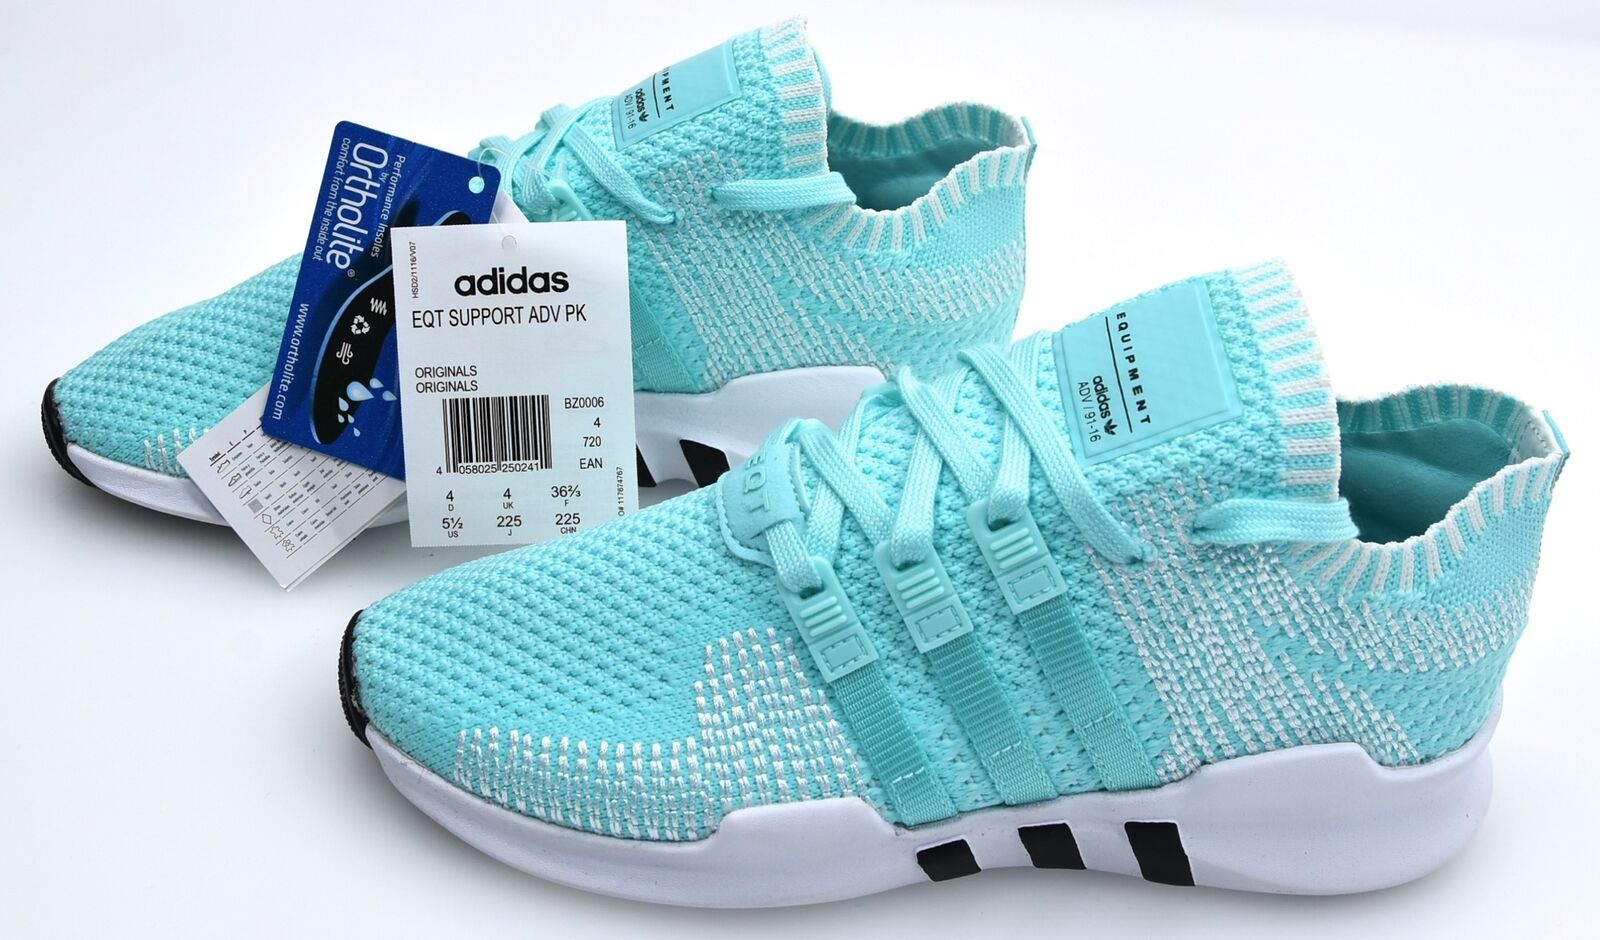 ADIDAS WOMAN SPORTS SNEAKER SHOES SYNTHETIC CODE BZ0006 EQT SUPPORT ADV PK W